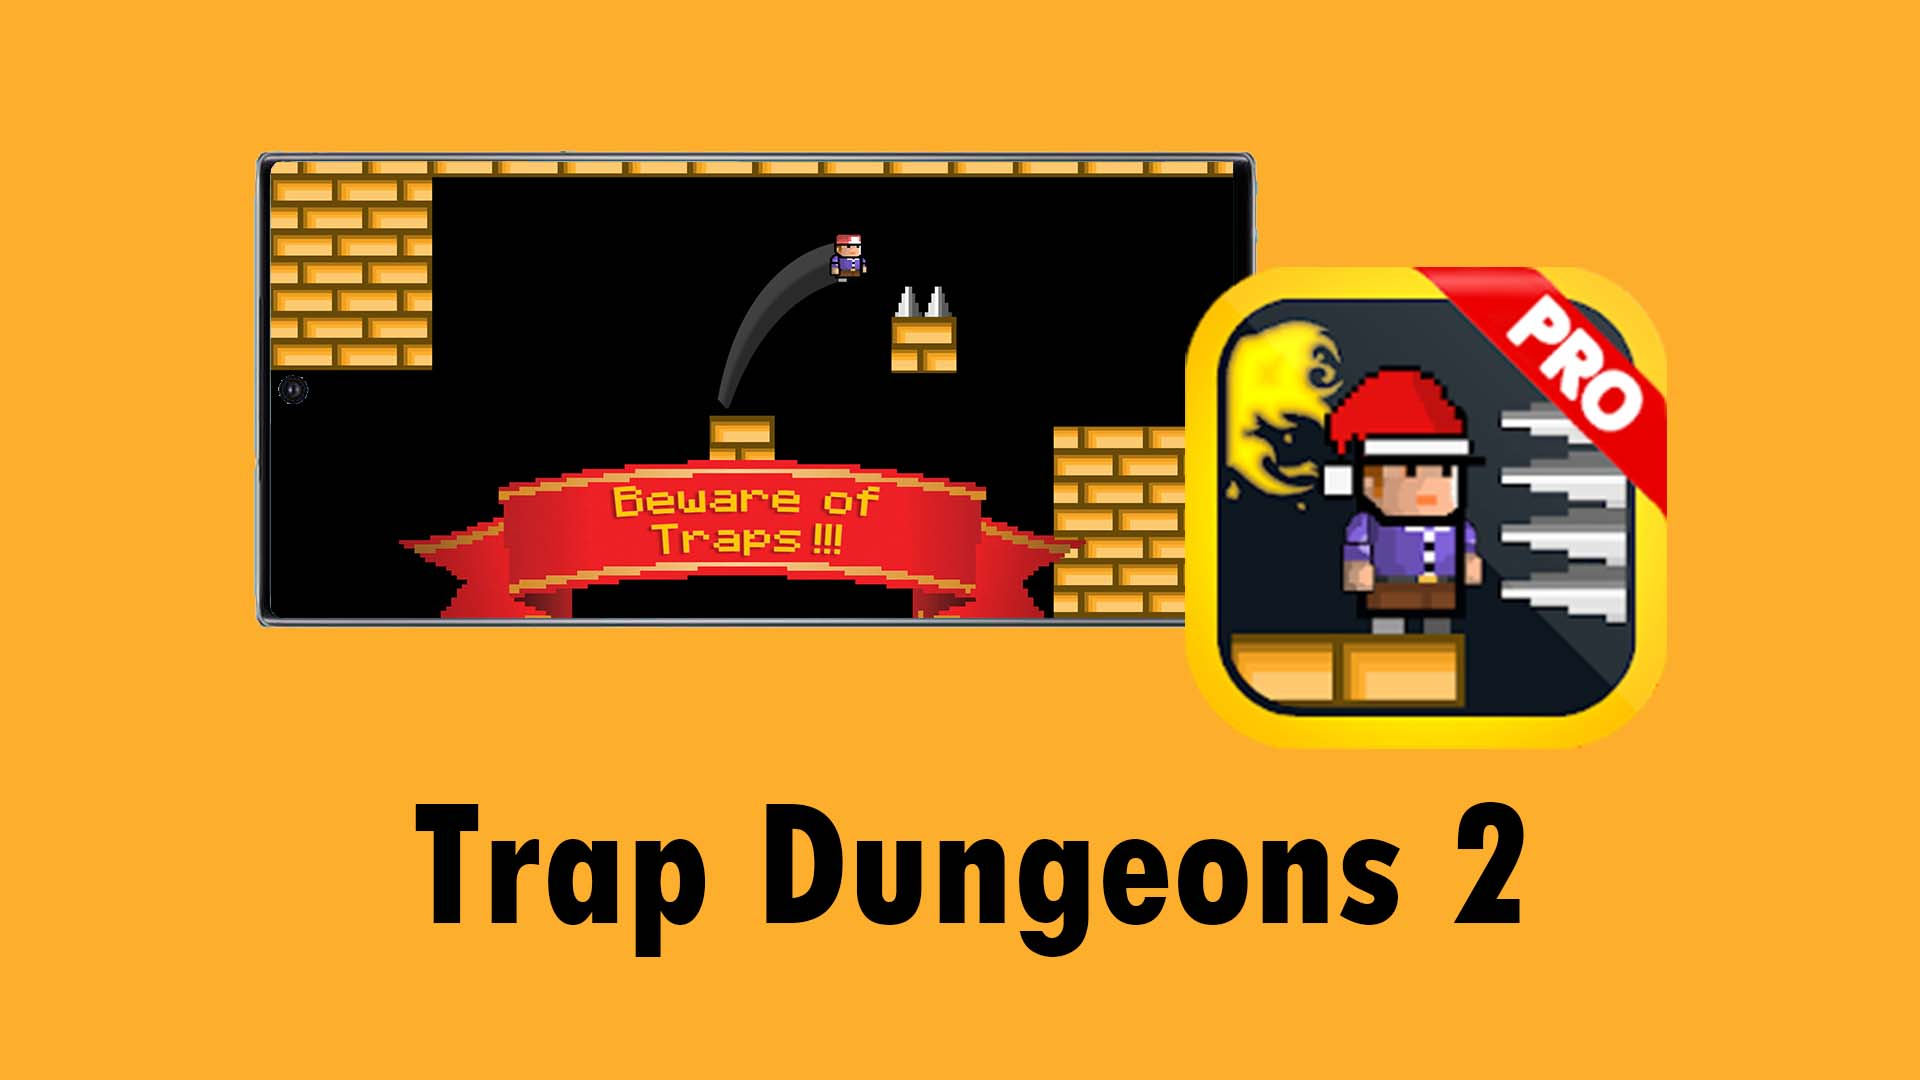 Trap Dungeons 2